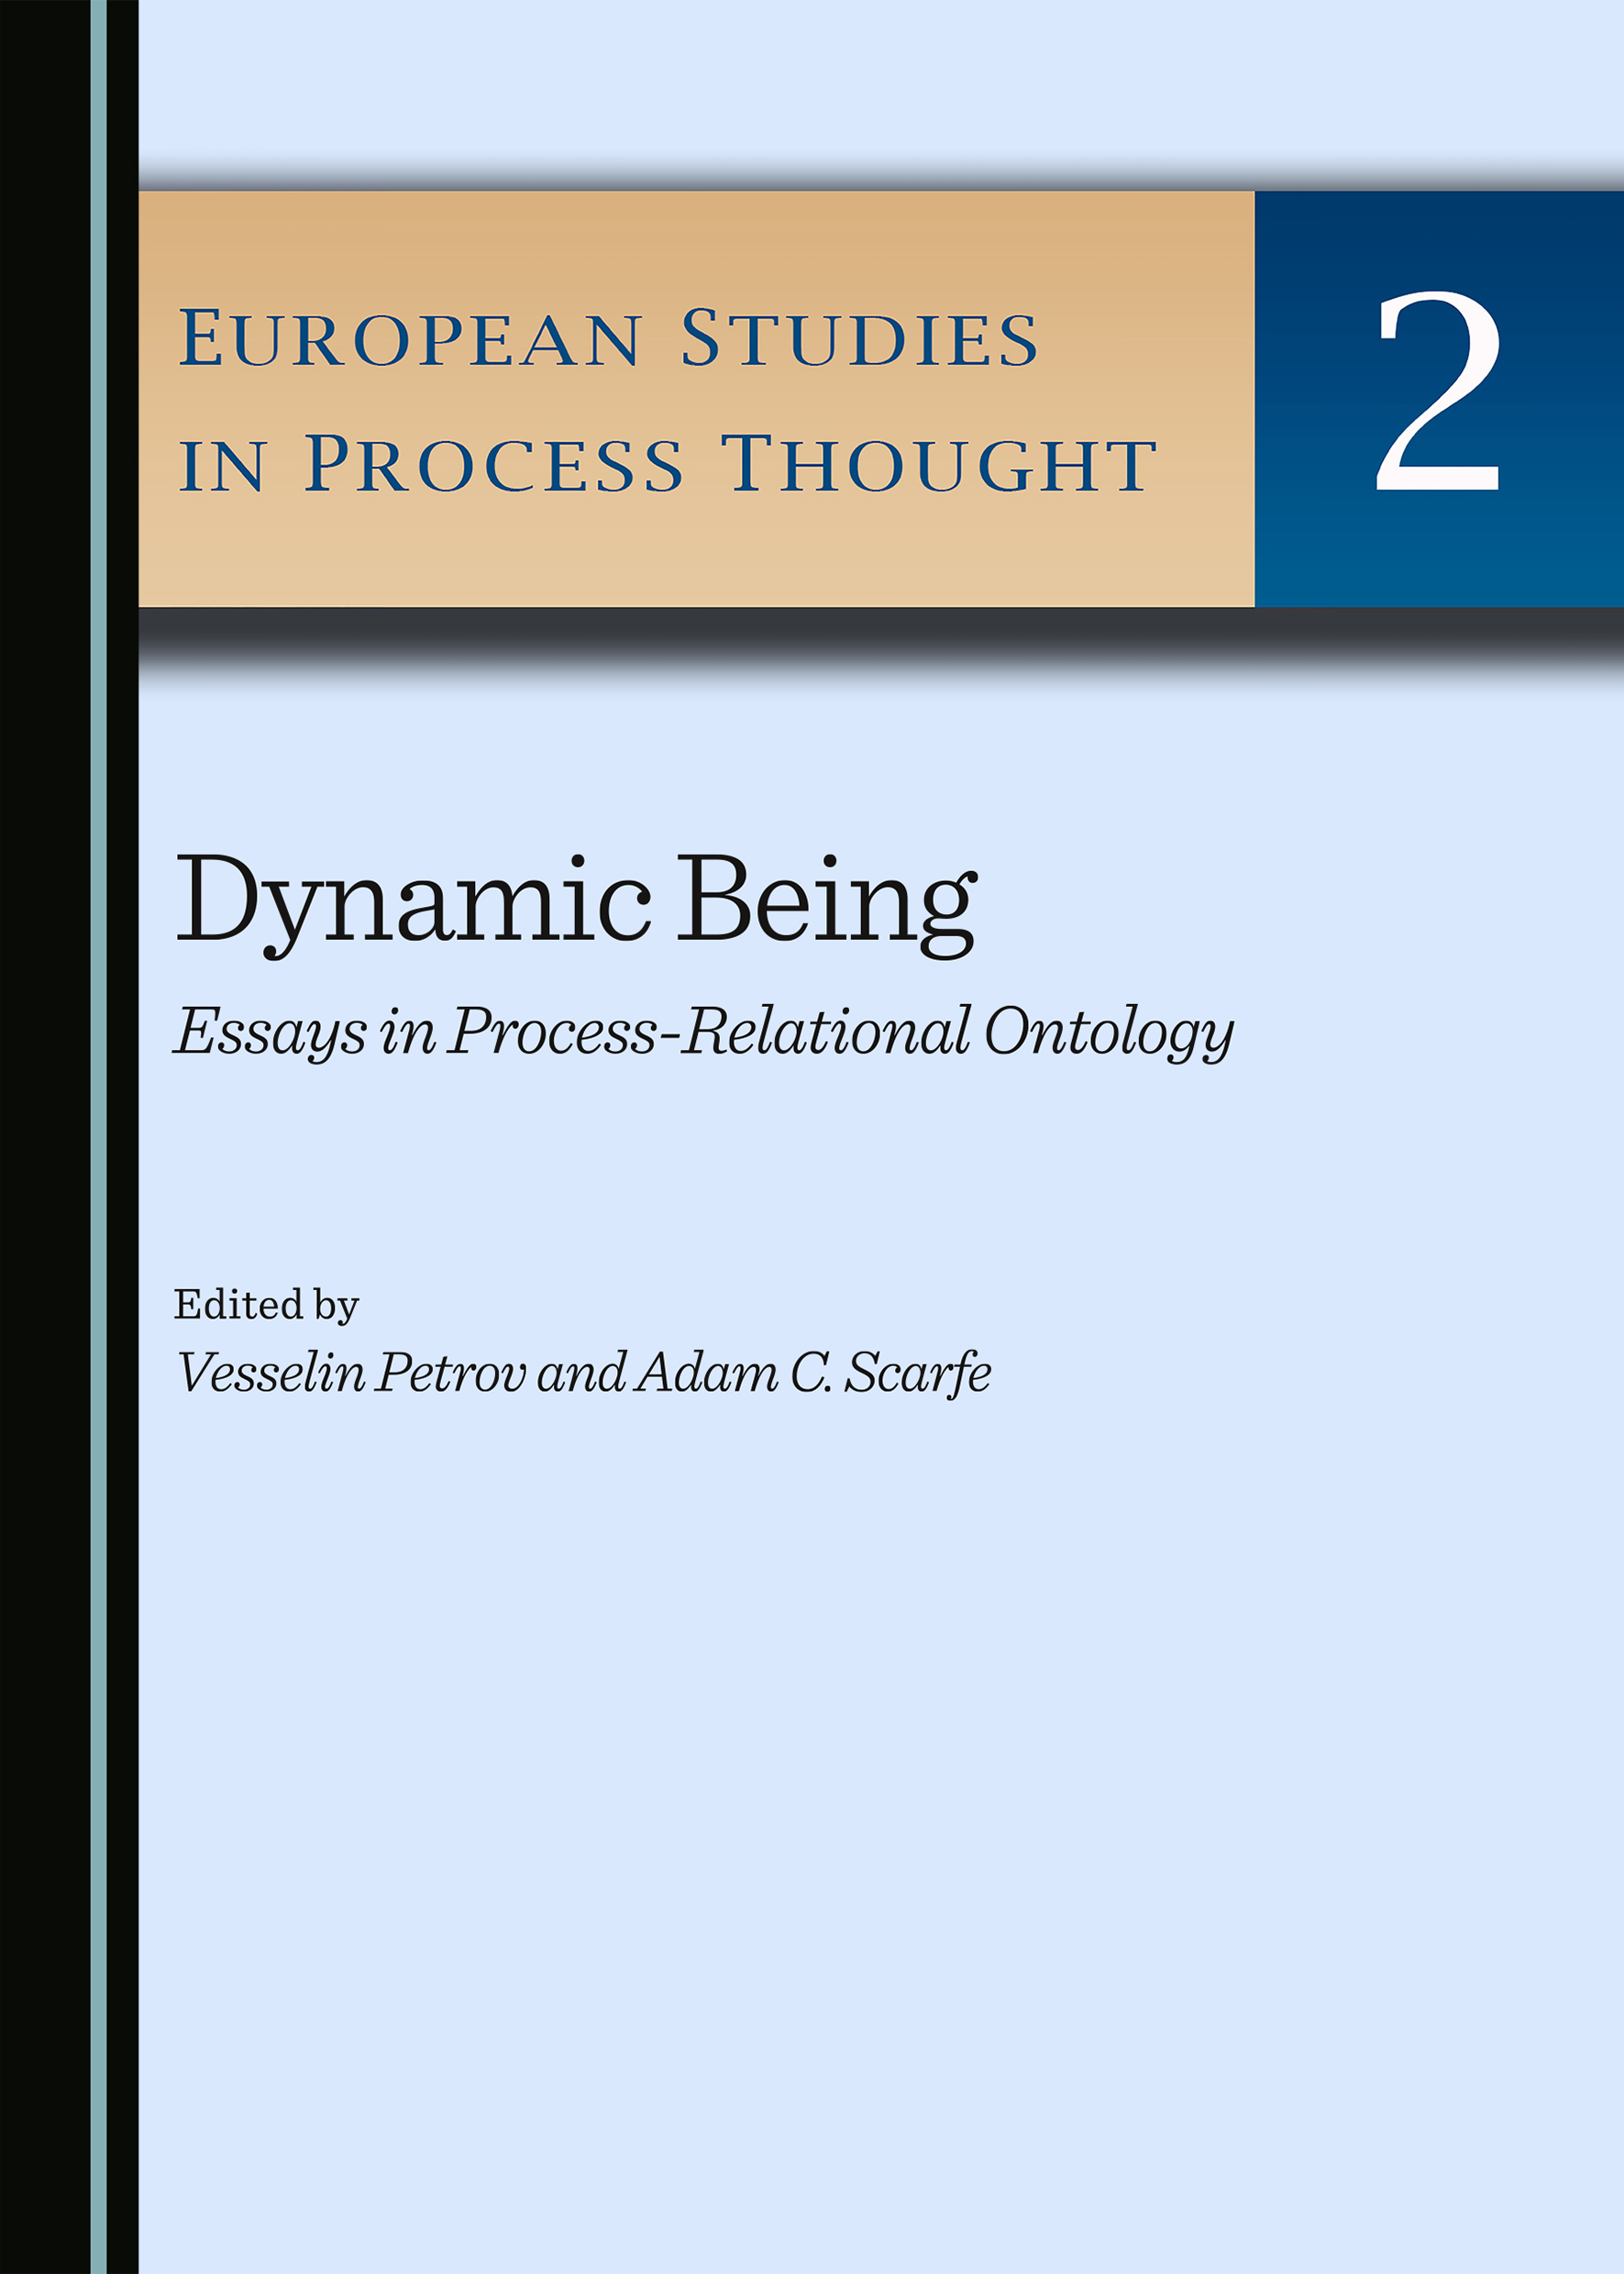 Dynamic Being: Essays in Process-Relational Ontology